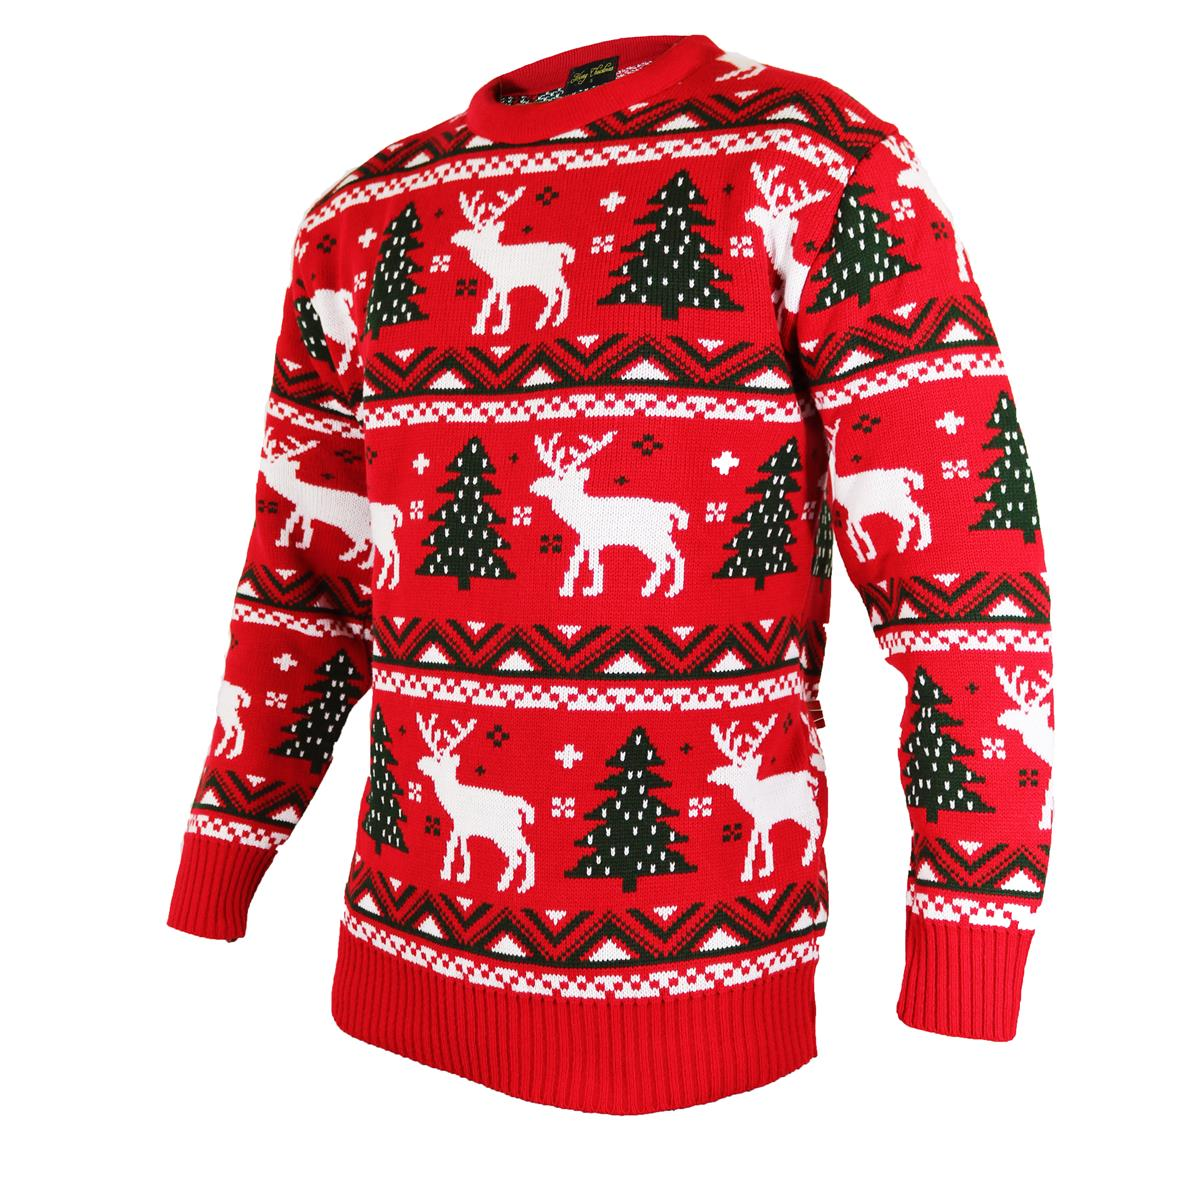 Christmas Jumpers in Fairisle RED, Knitted Style with Reindeer, Xmas ...